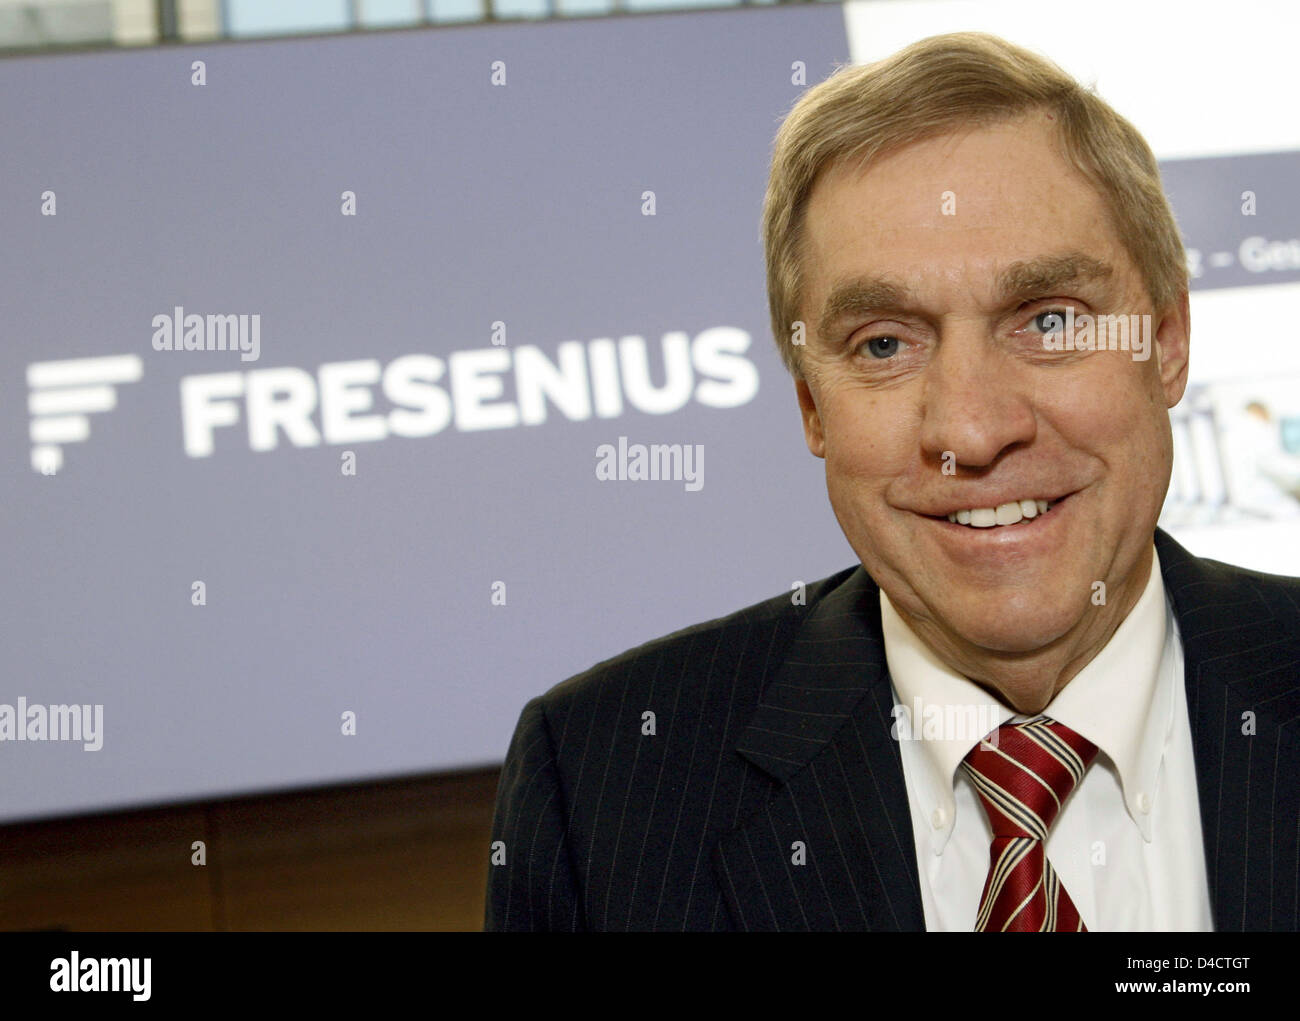 The CEO of Fresenius Medical Care Ben Lipps is pictured at the balance press conference at the Fresenius headquarters - Stock Image